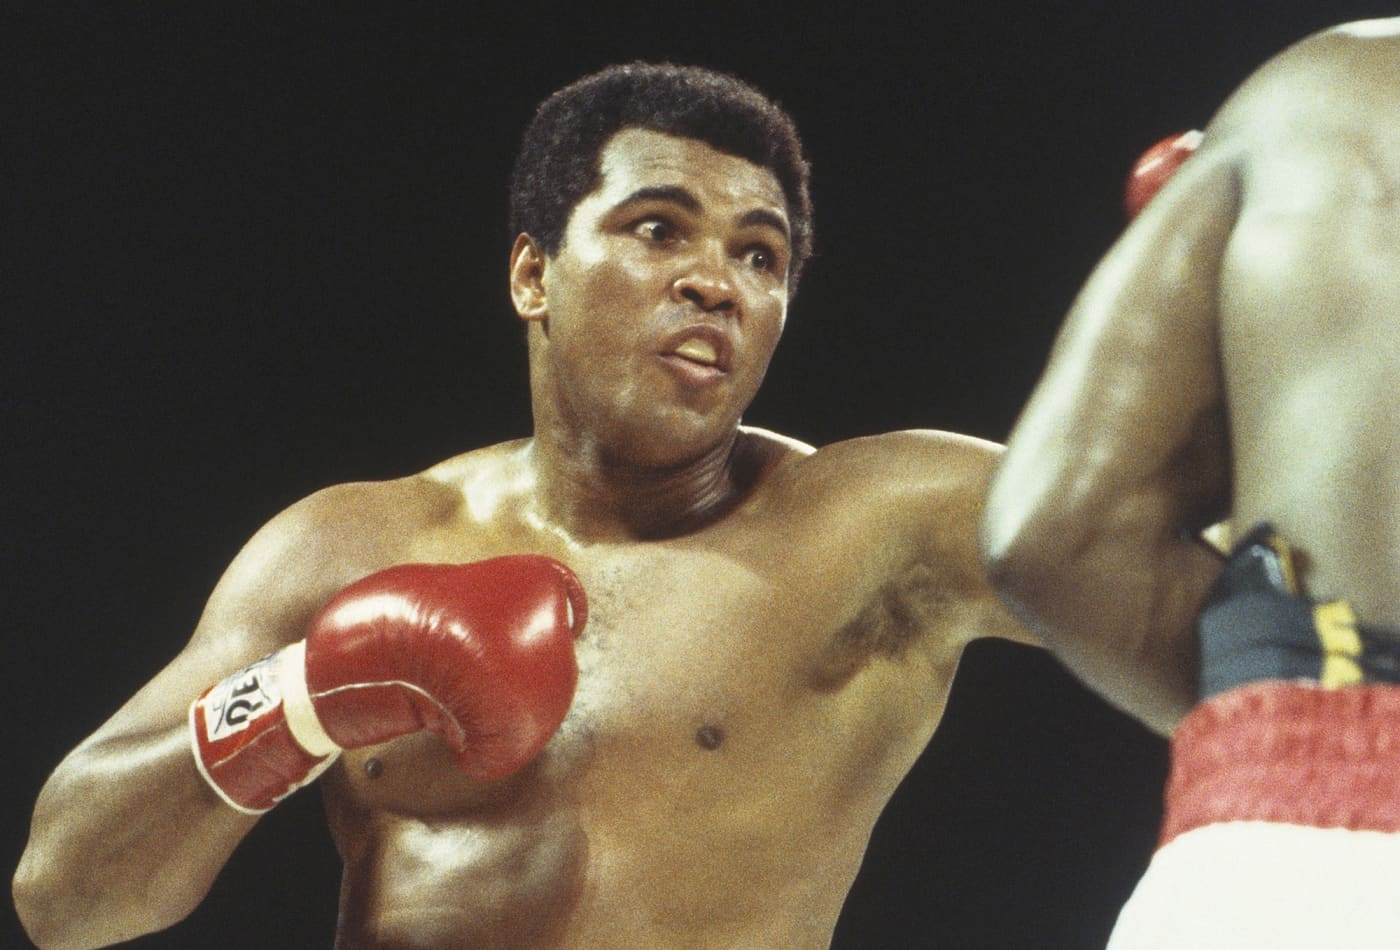 Success lessons boxing legend Muhammad Ali passed on to